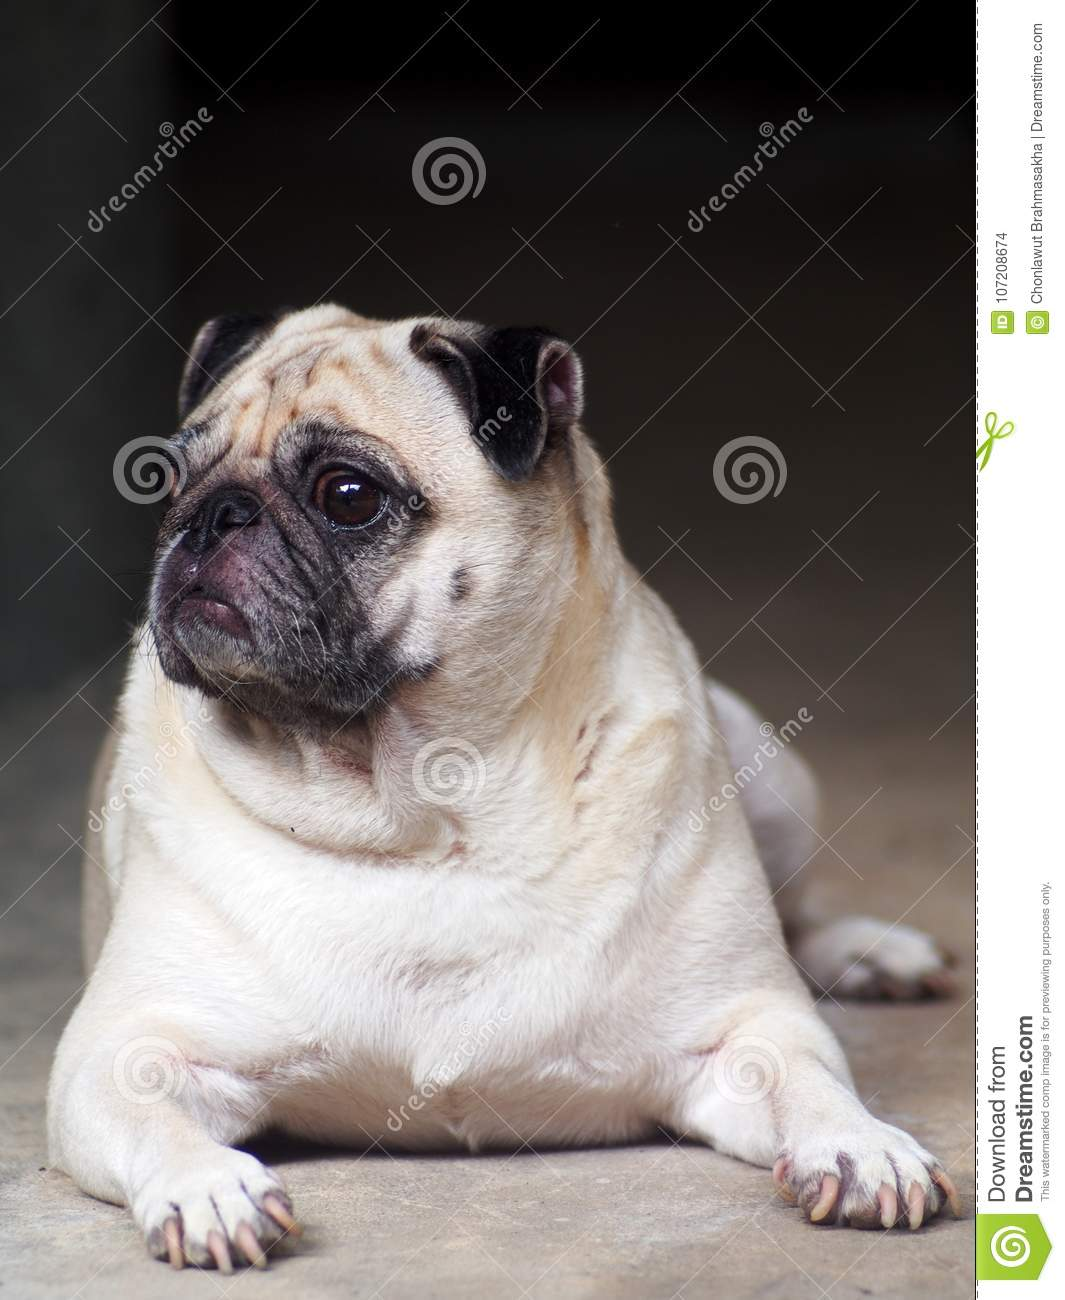 Portraits photo of a lovely white fat cute pug dog laying relaxing on warm concrete garage floor making sad and lonesome face under natural summer sunlight